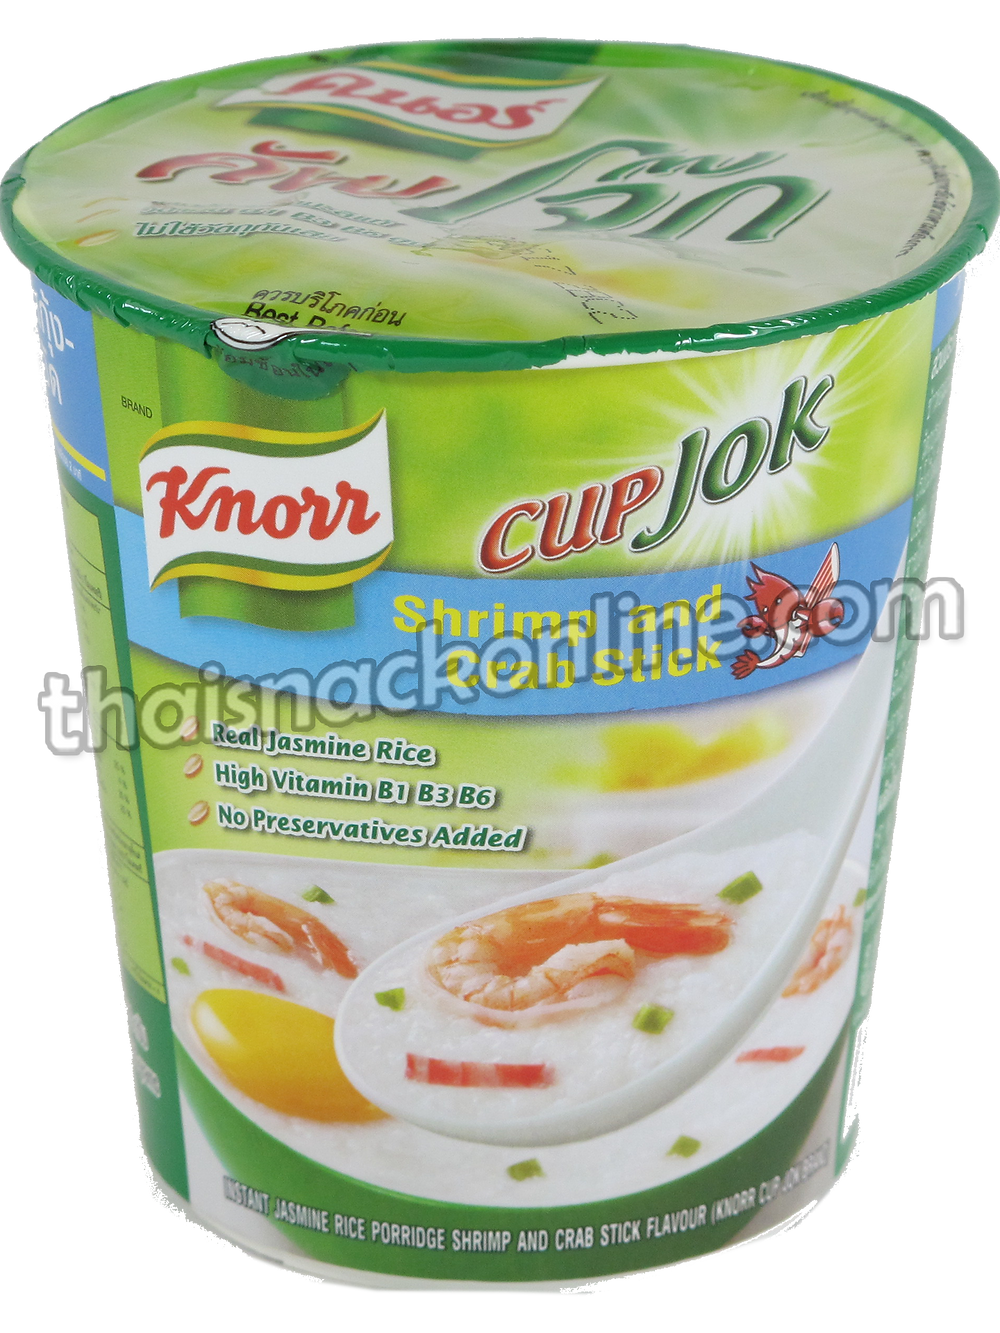 Knorr Cup - Congee Shrimp and Crab Stick